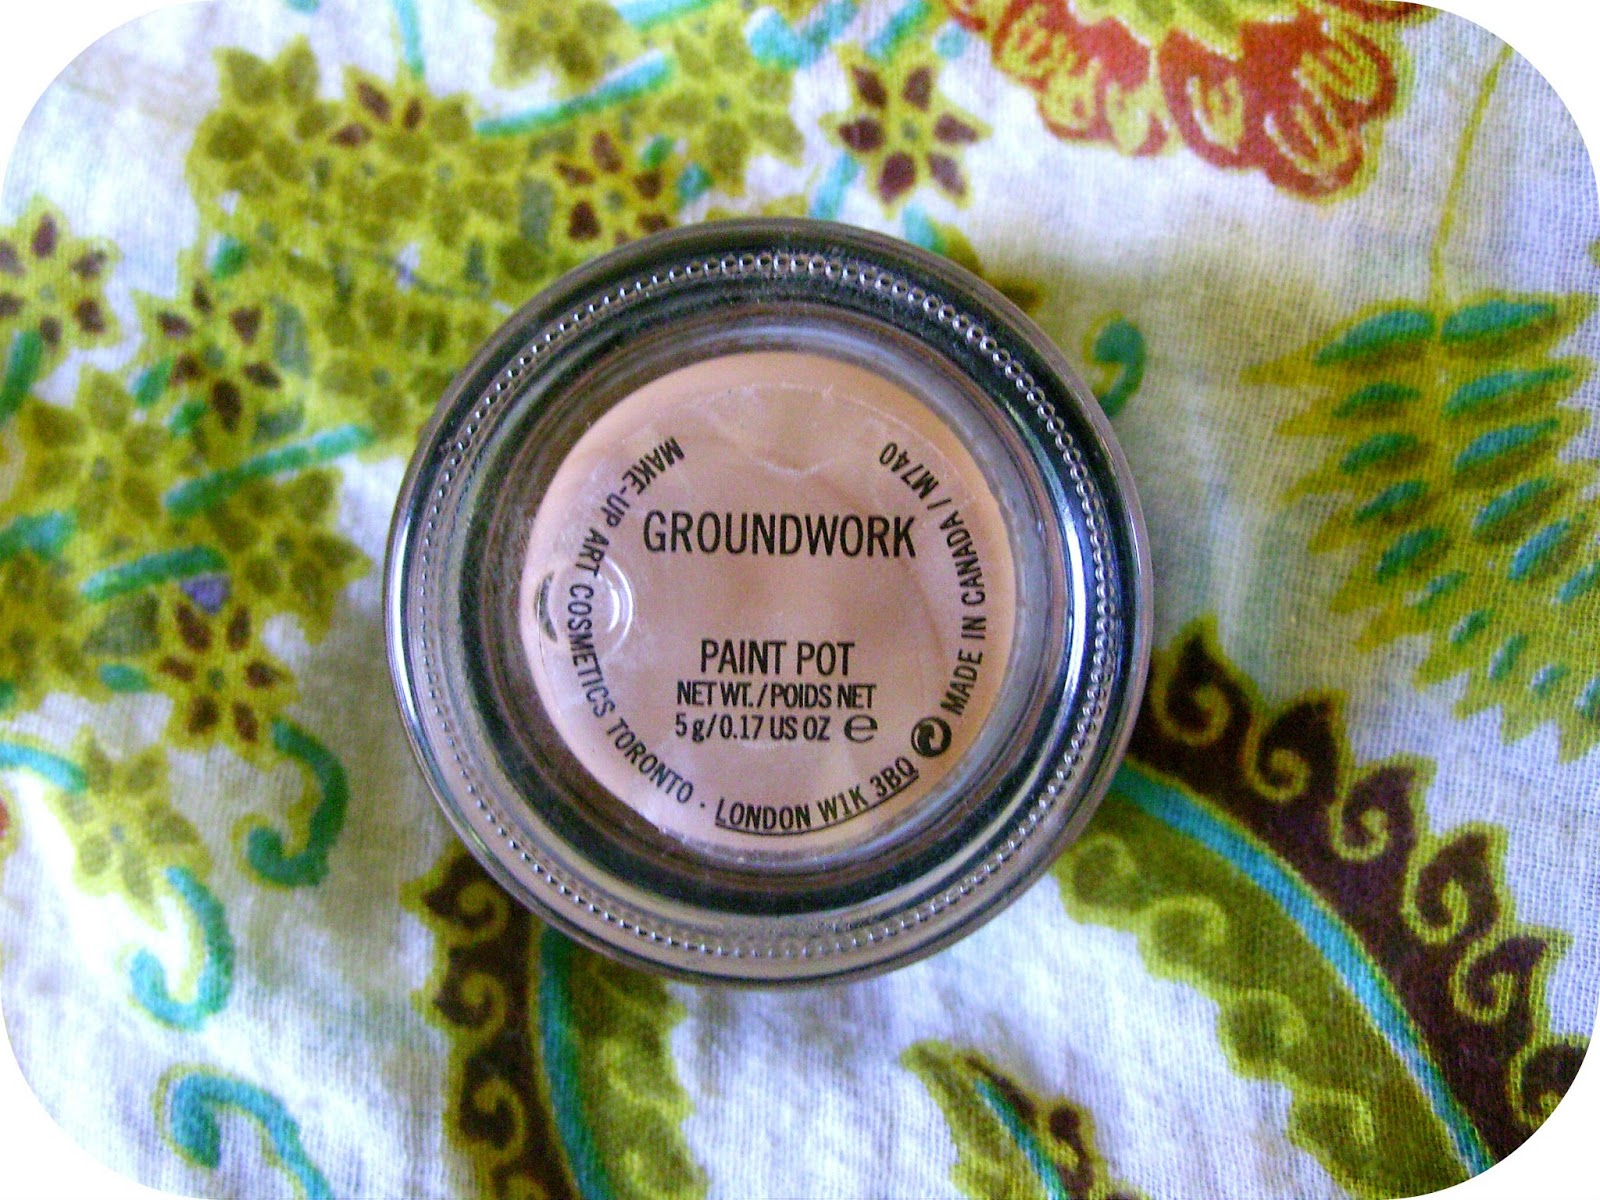 Review mac paintpot in groundwork mirror on the wall for Mac paint pot groundwork